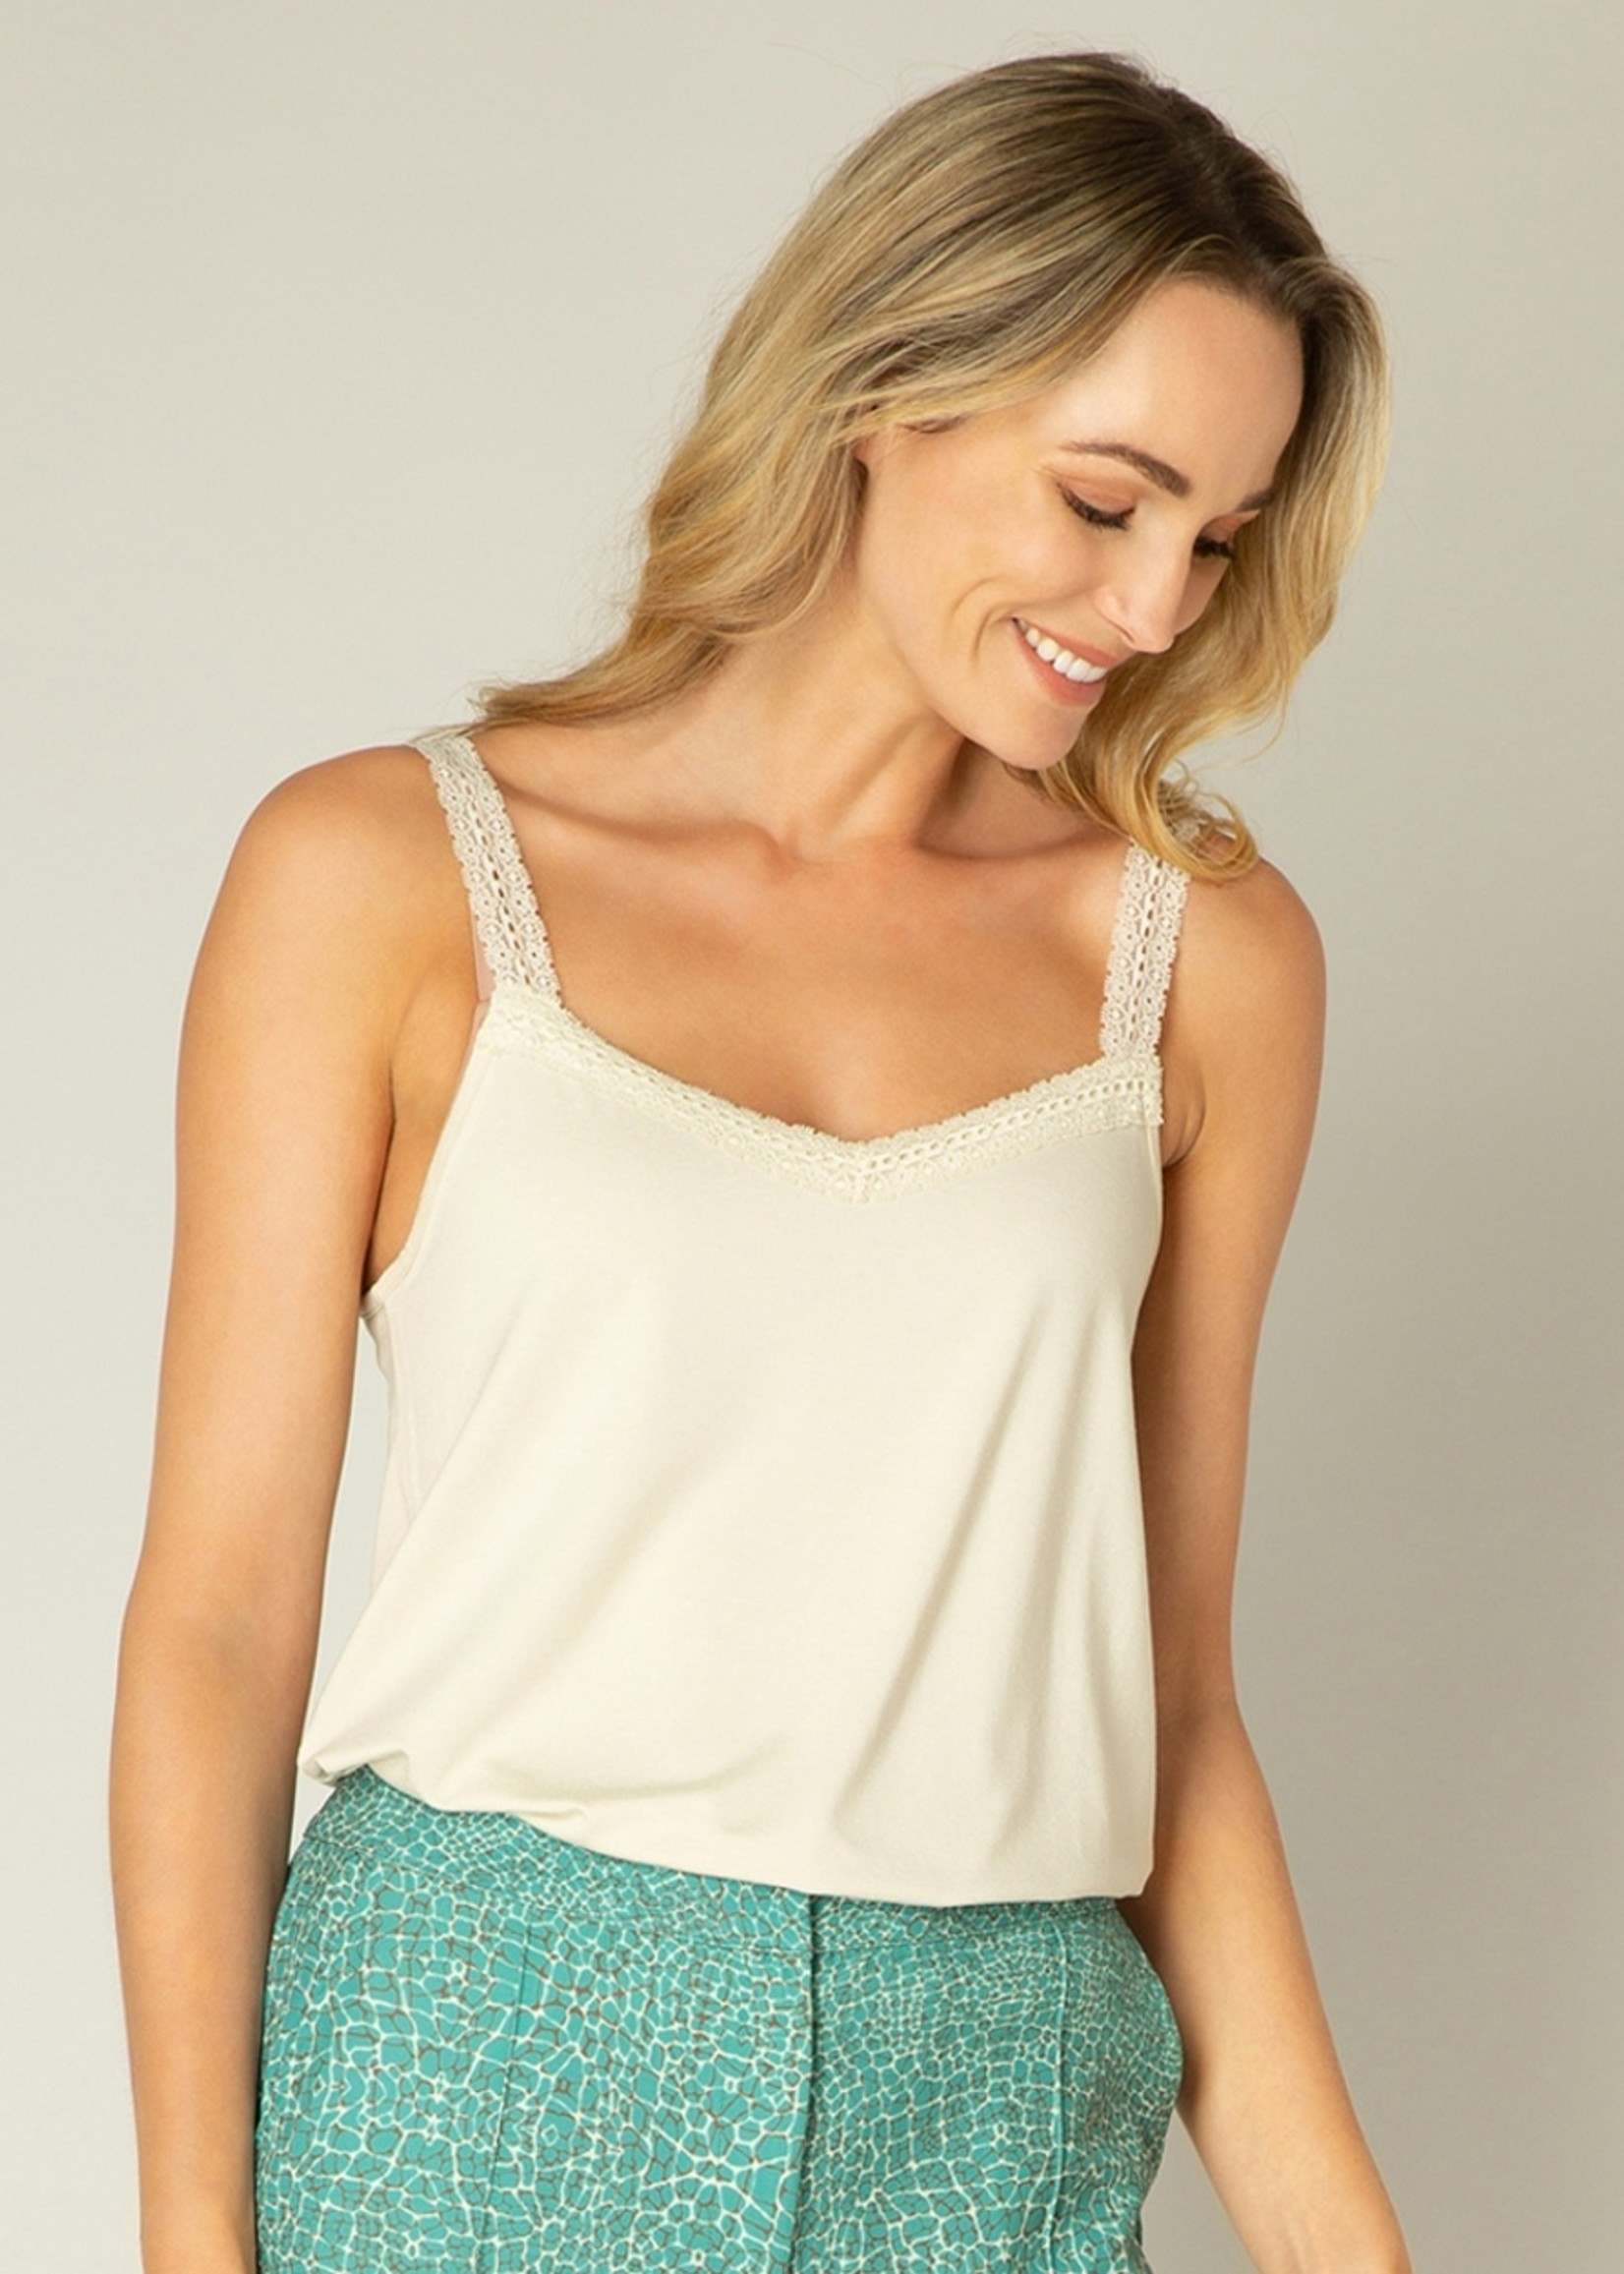 Ivy Beau Ivy Beau Queeny Top